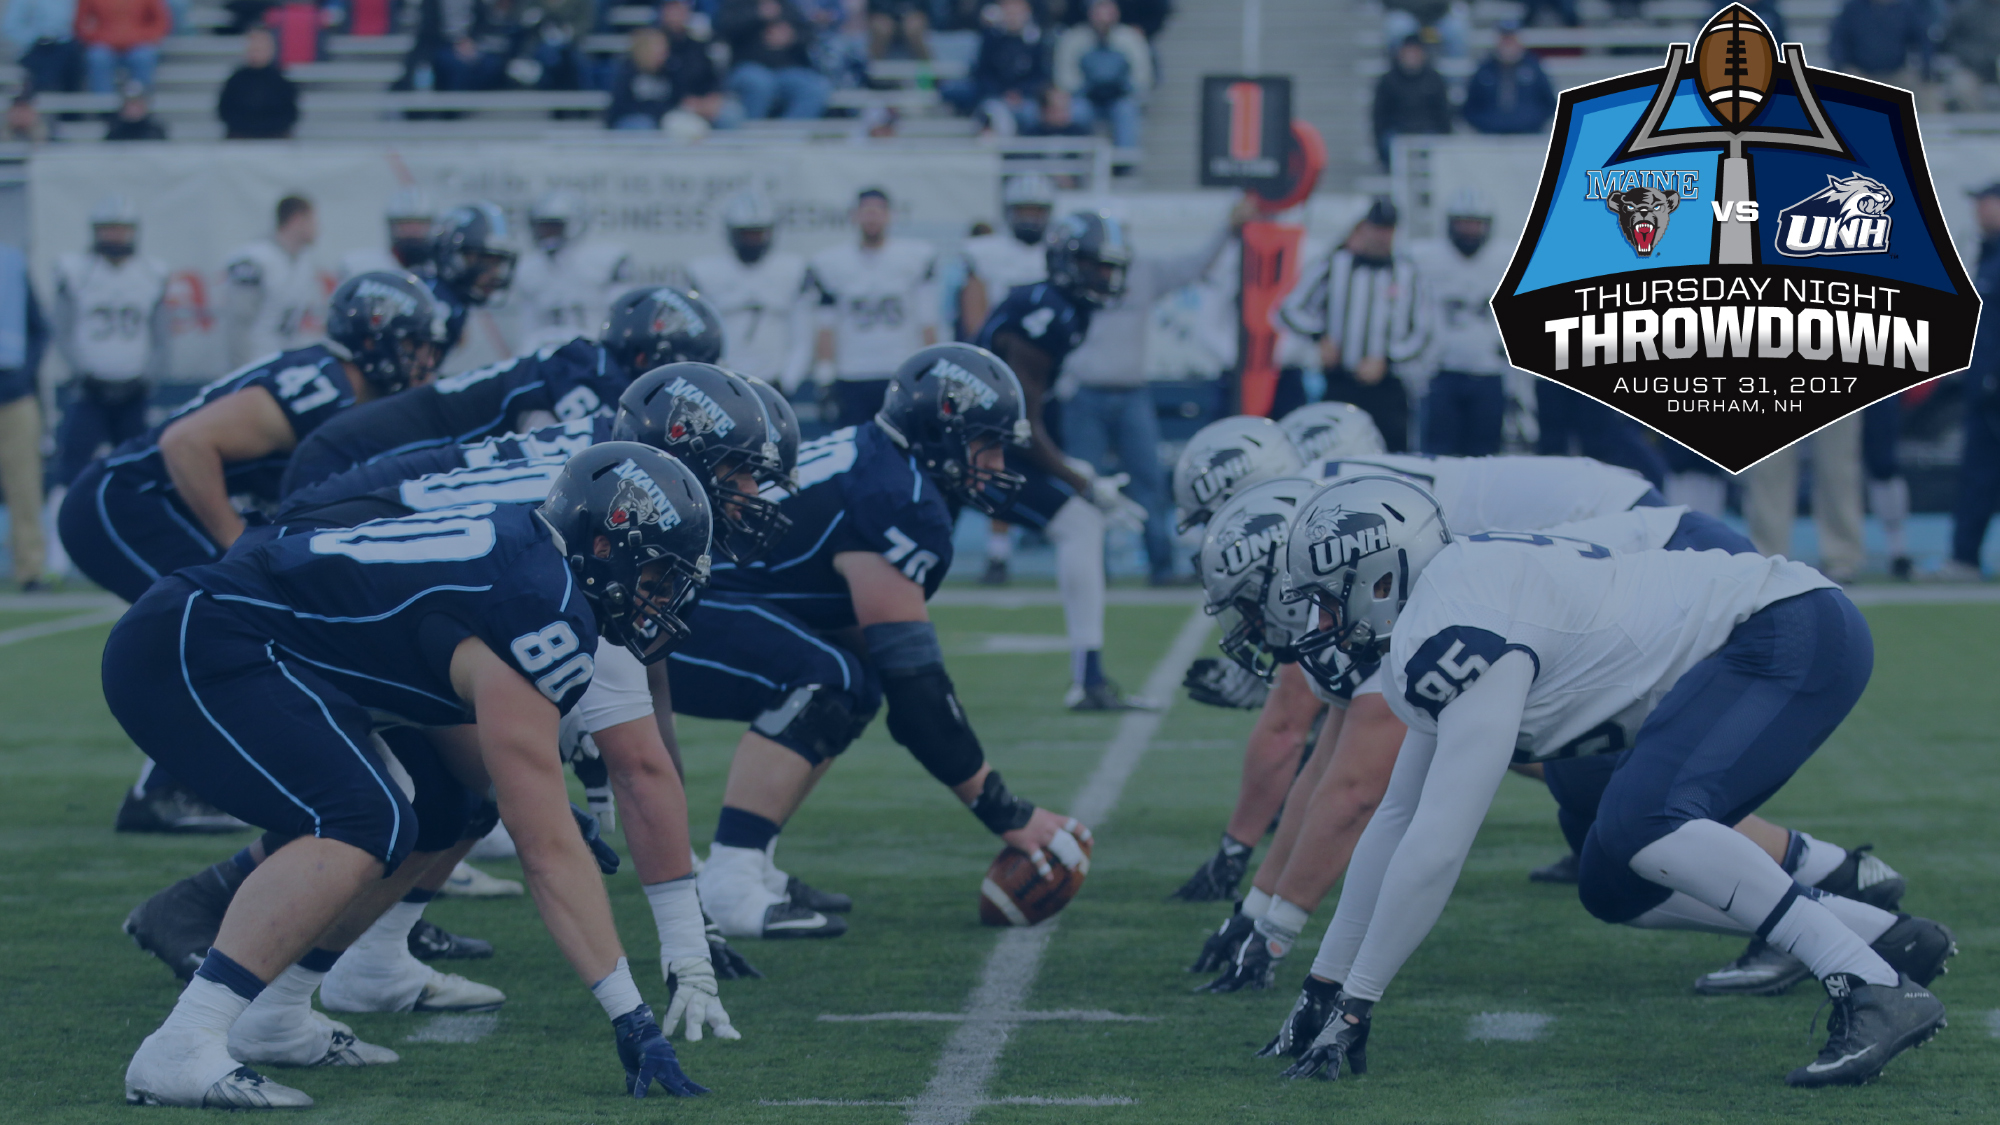 Maine Football To Kick Off 2017 In Thursday Night Throwdown At